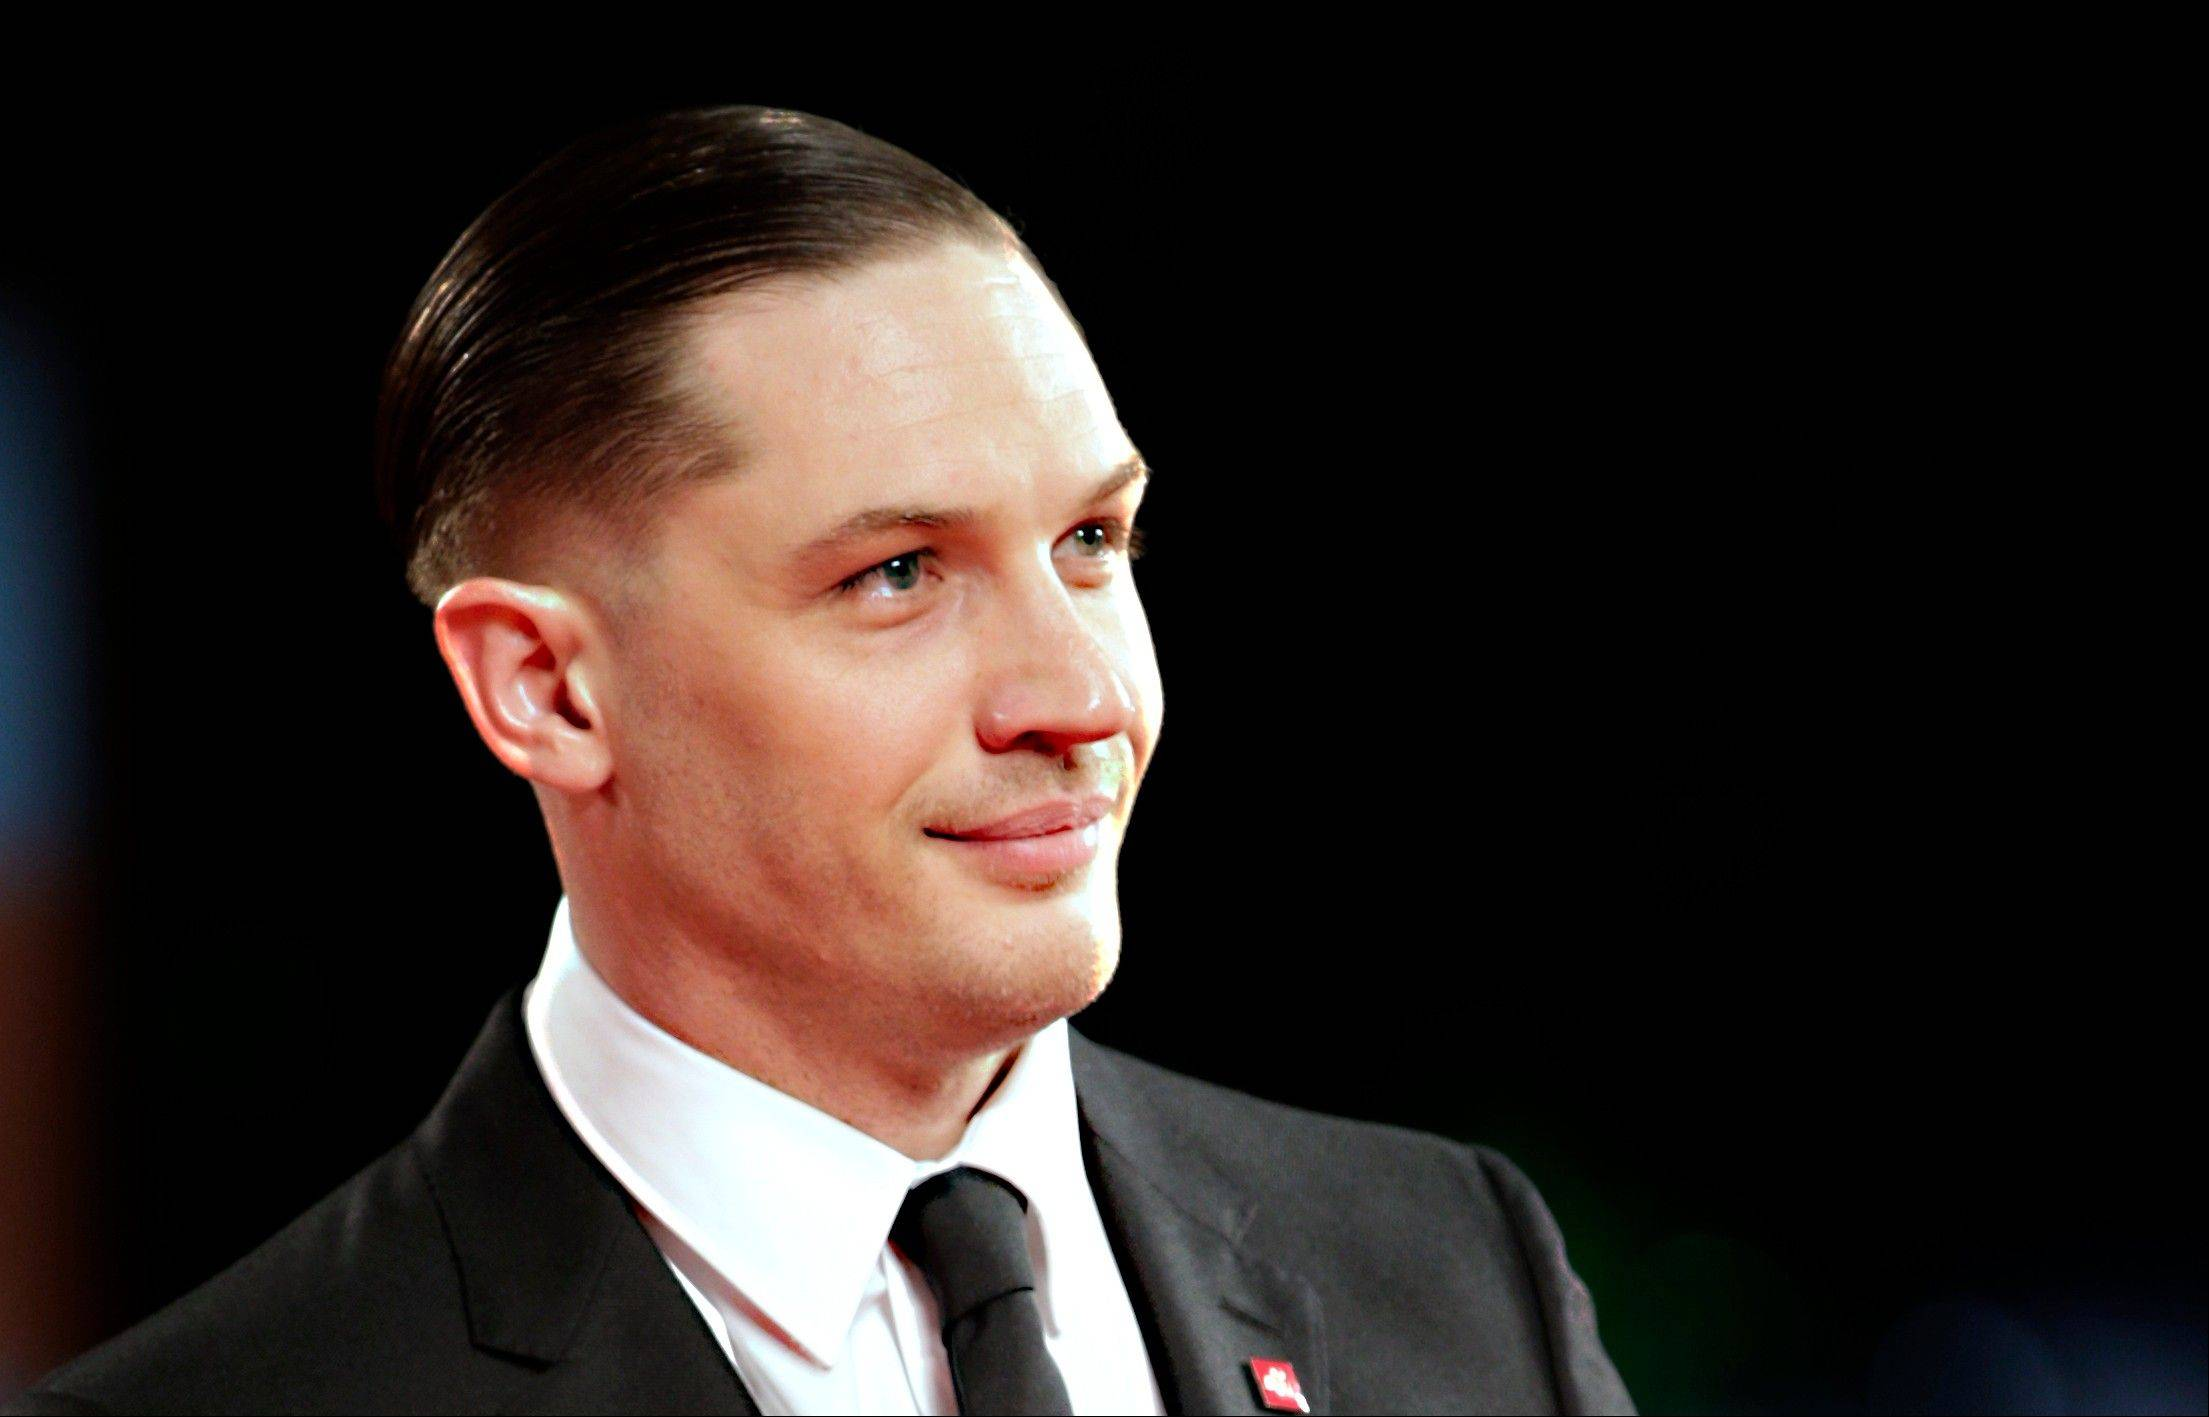 Tom Hardy will play Elton John in a biopic titled �Rocketman.�